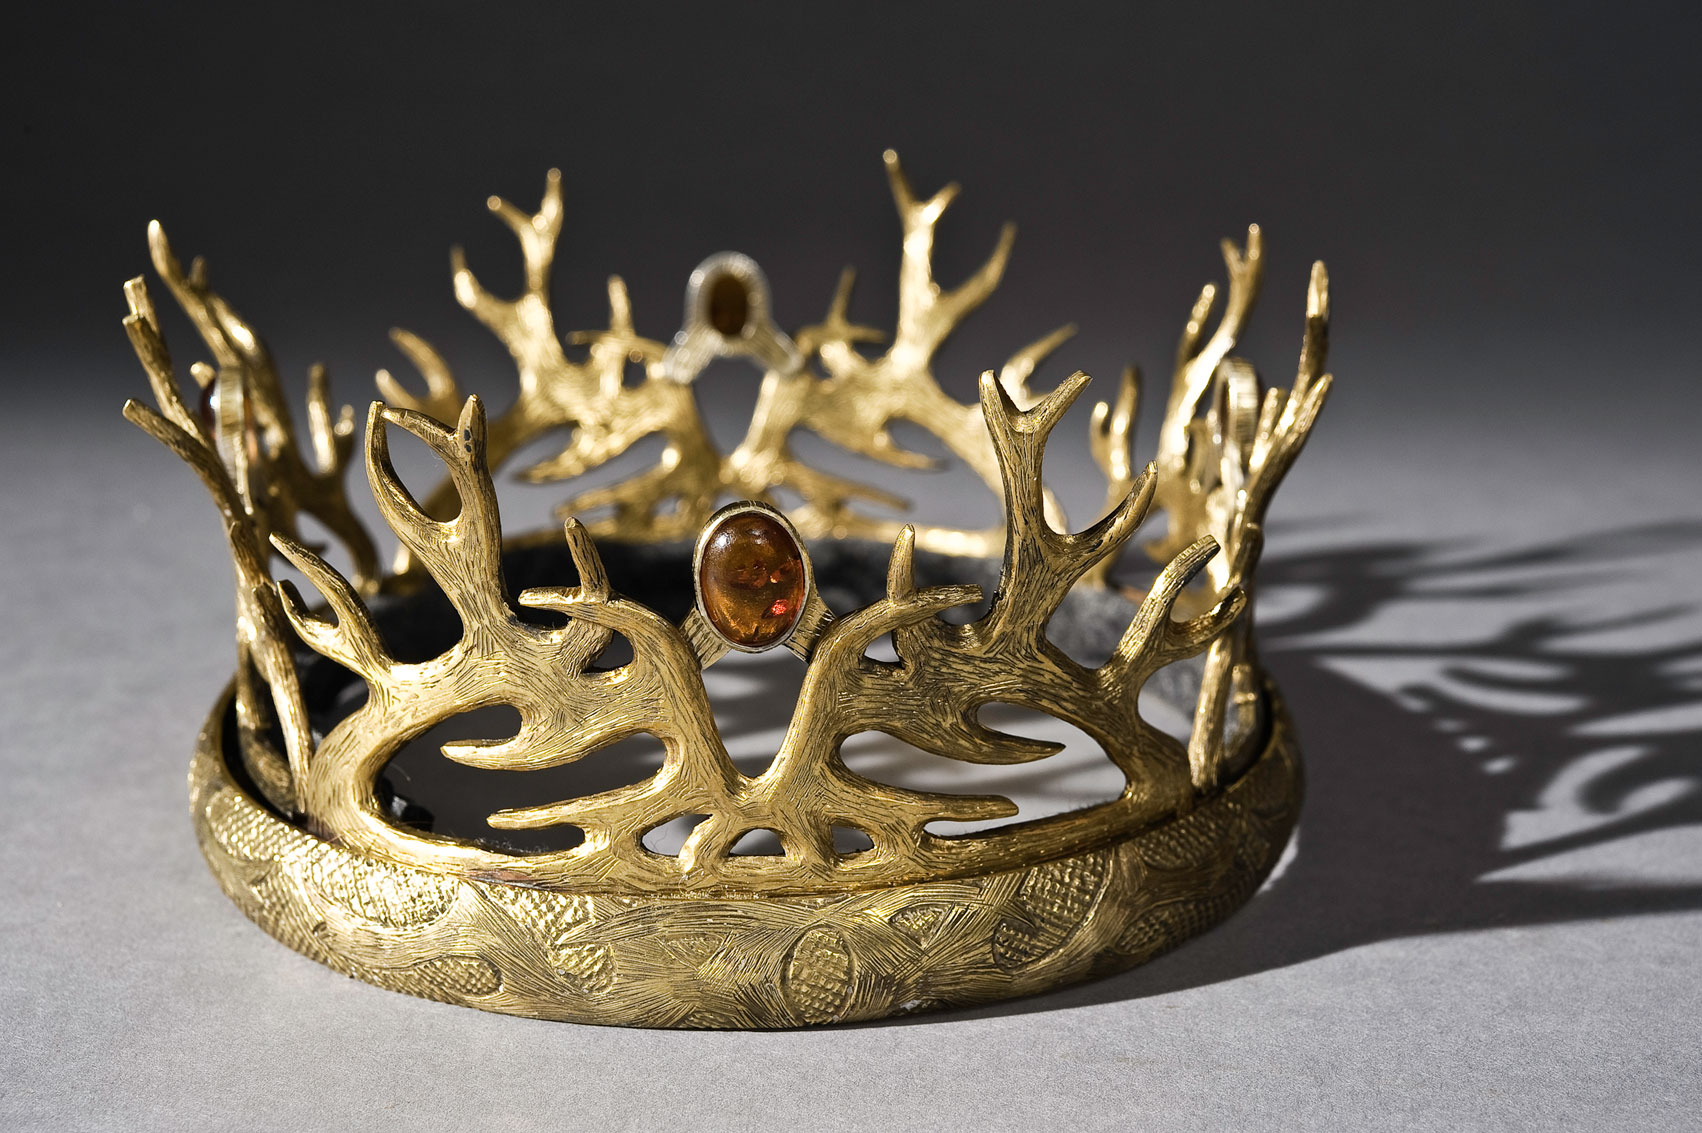 Free Choice: The Crown of Being Human